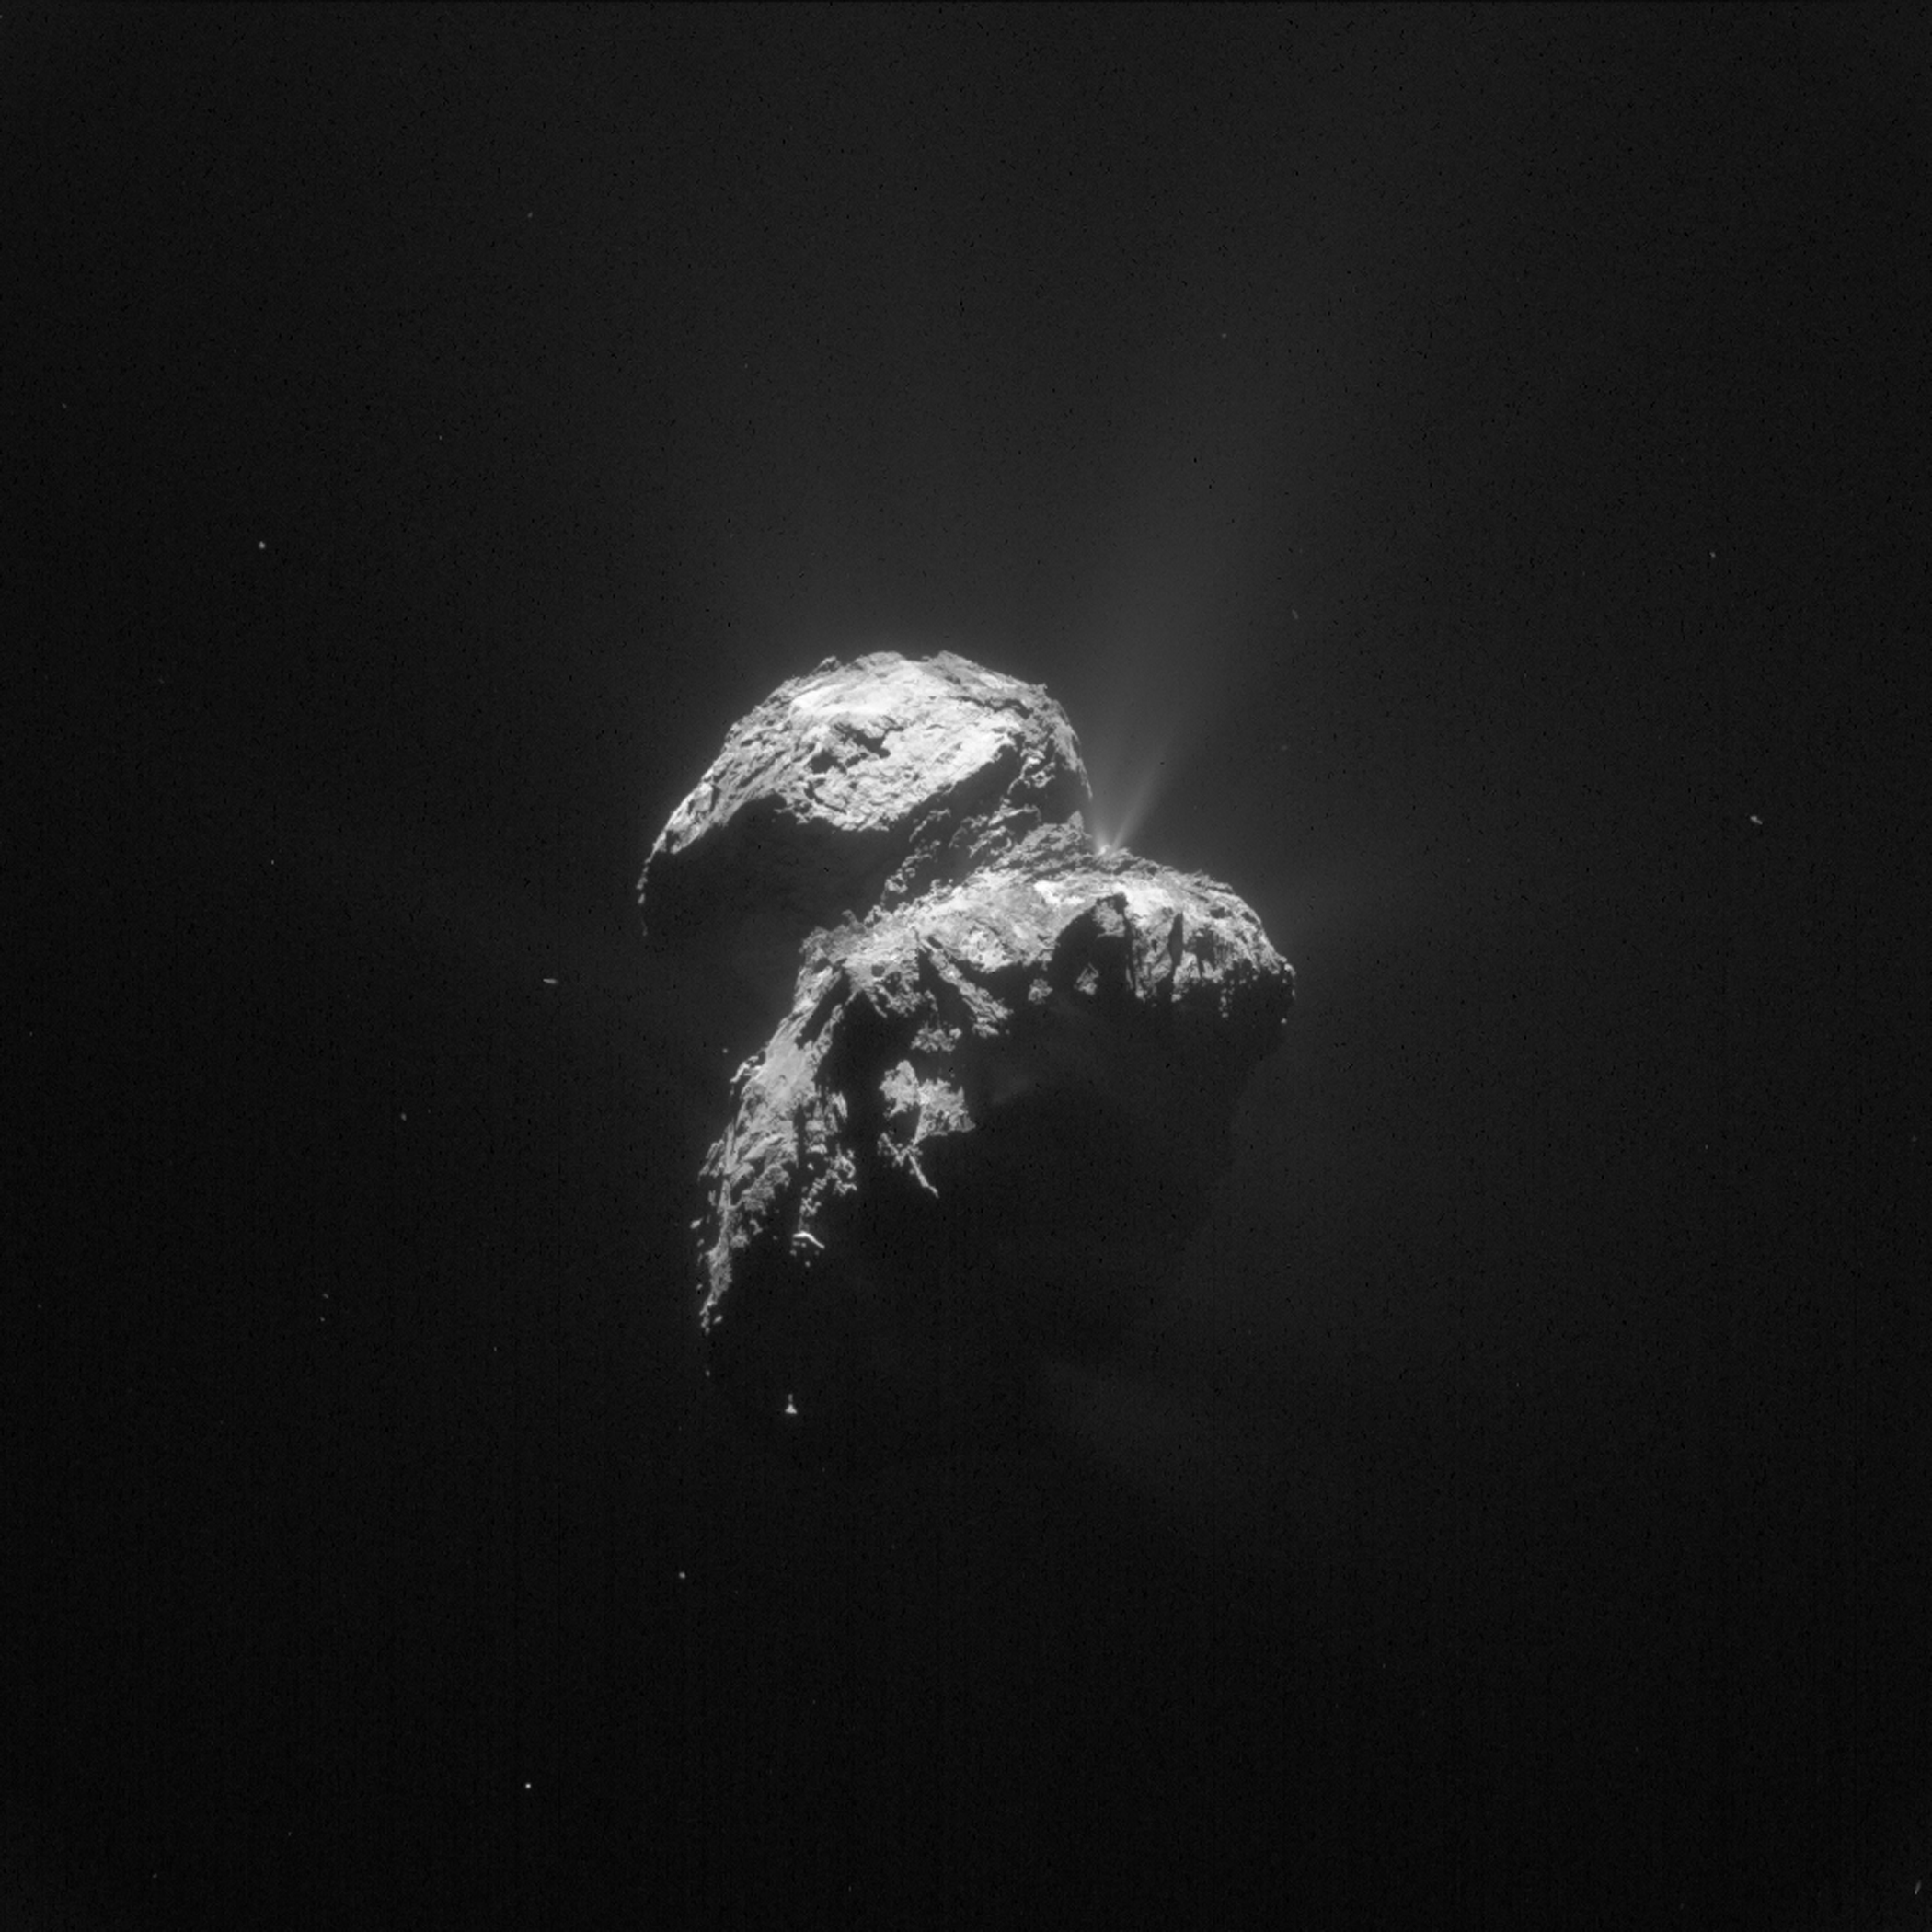 Comet 67P, photographed by the Rosetta Orbiter from a distance of 79 miles on Nov. 22, 2015.